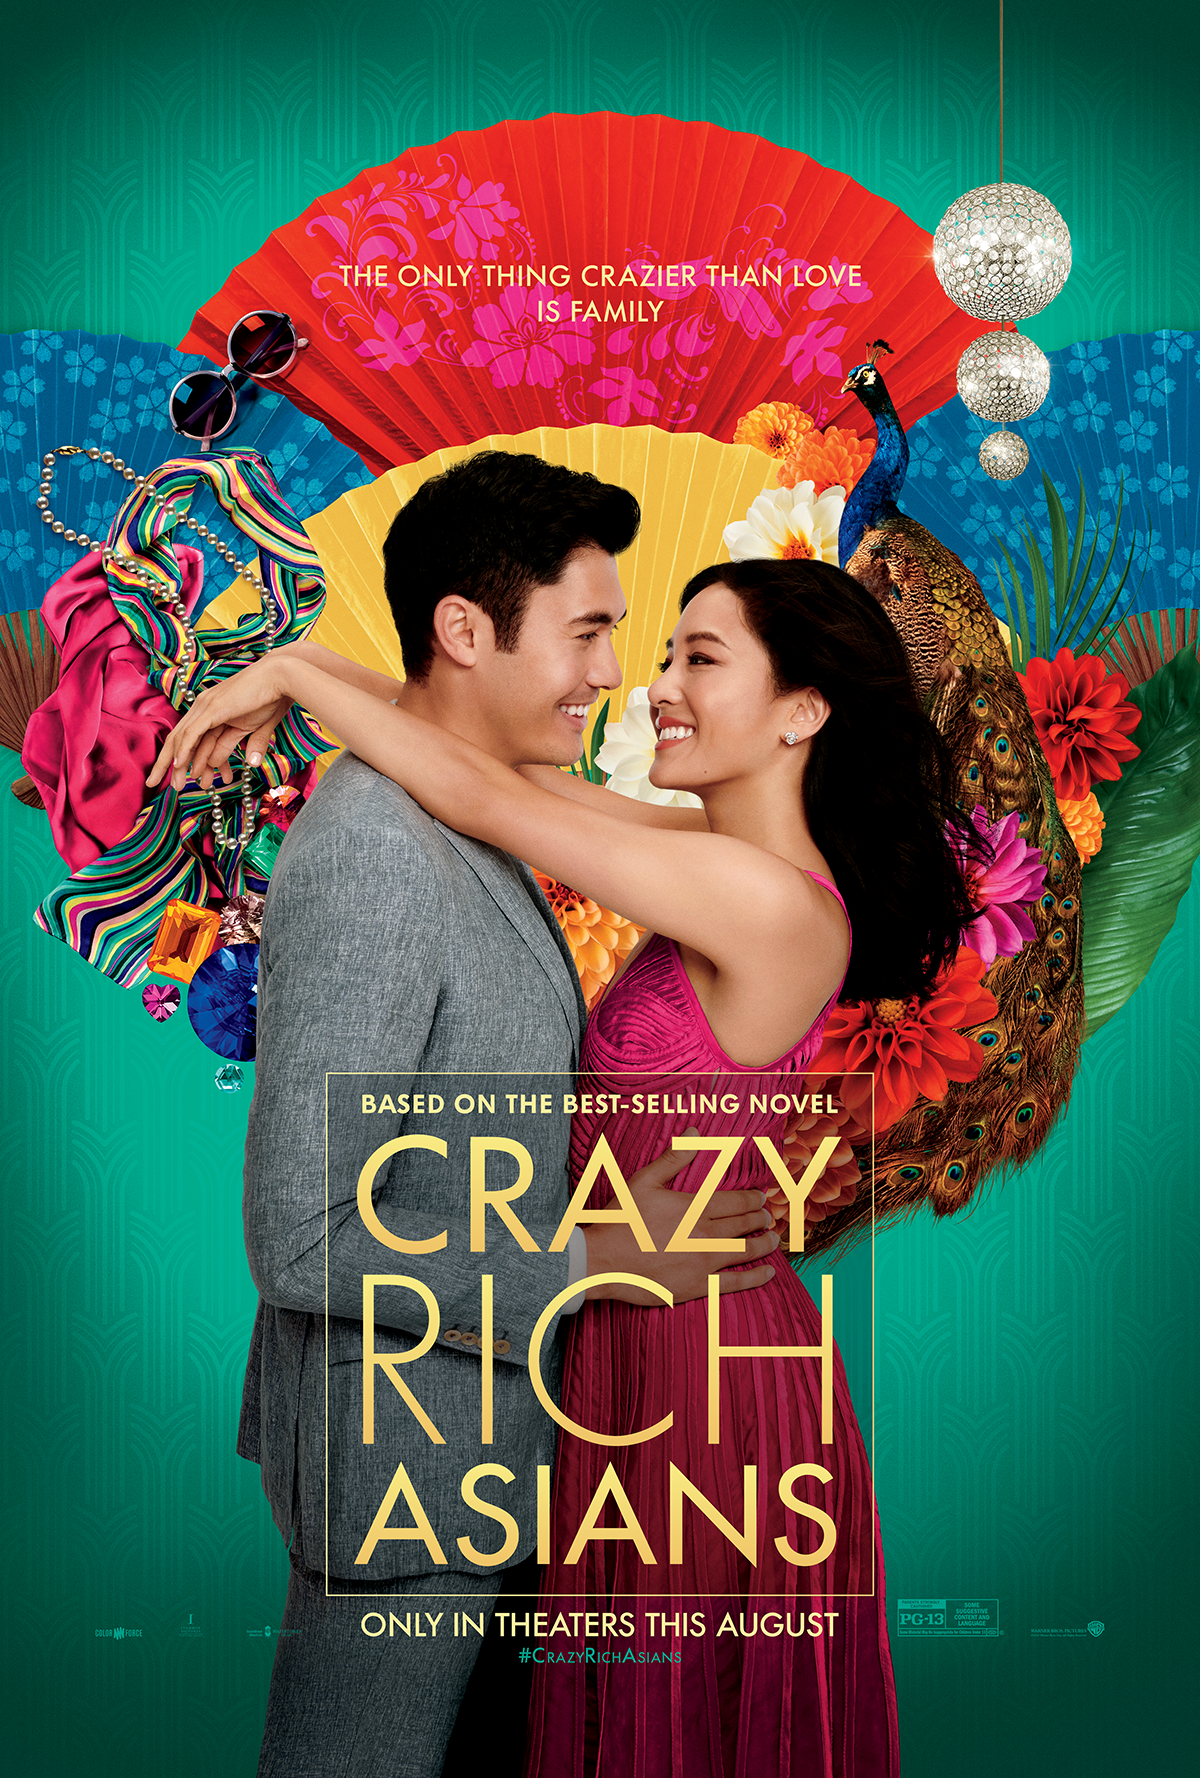 Thumbnail for CRAZY RICH ASIANS - THEATRICAL INTEGRATED CAMPAIGN